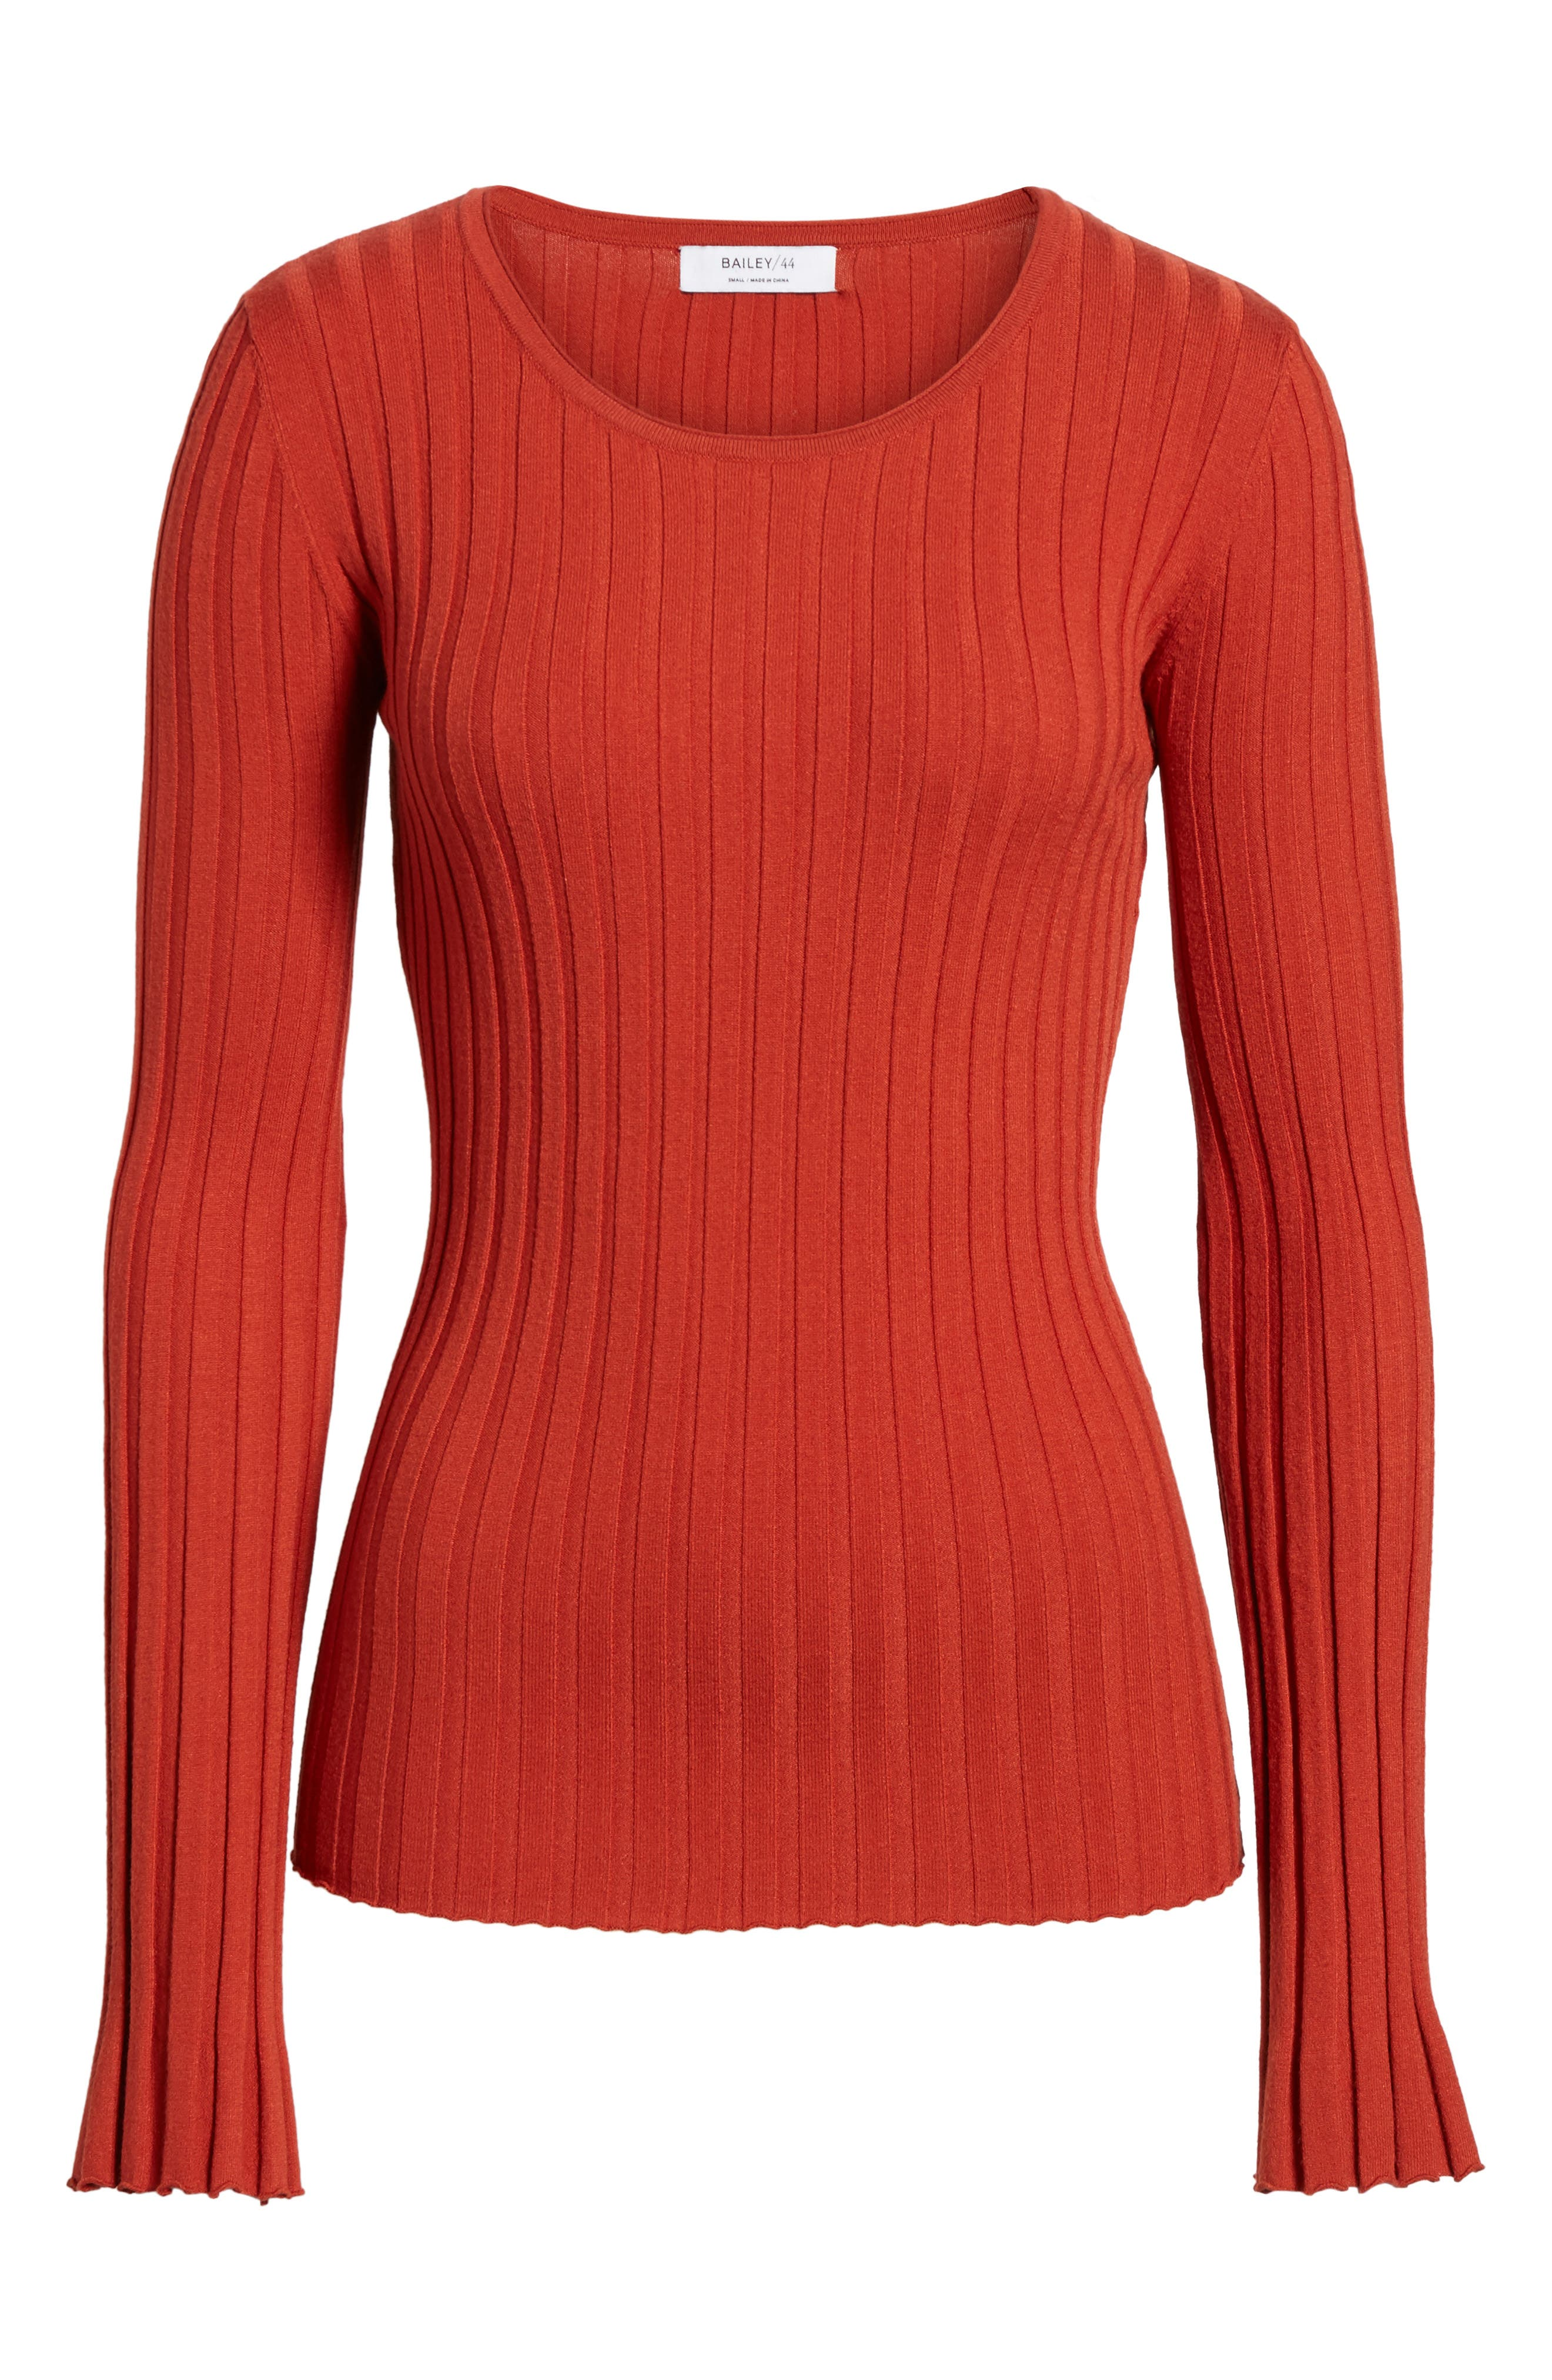 Enchanted Forest Sweater,                             Alternate thumbnail 11, color,